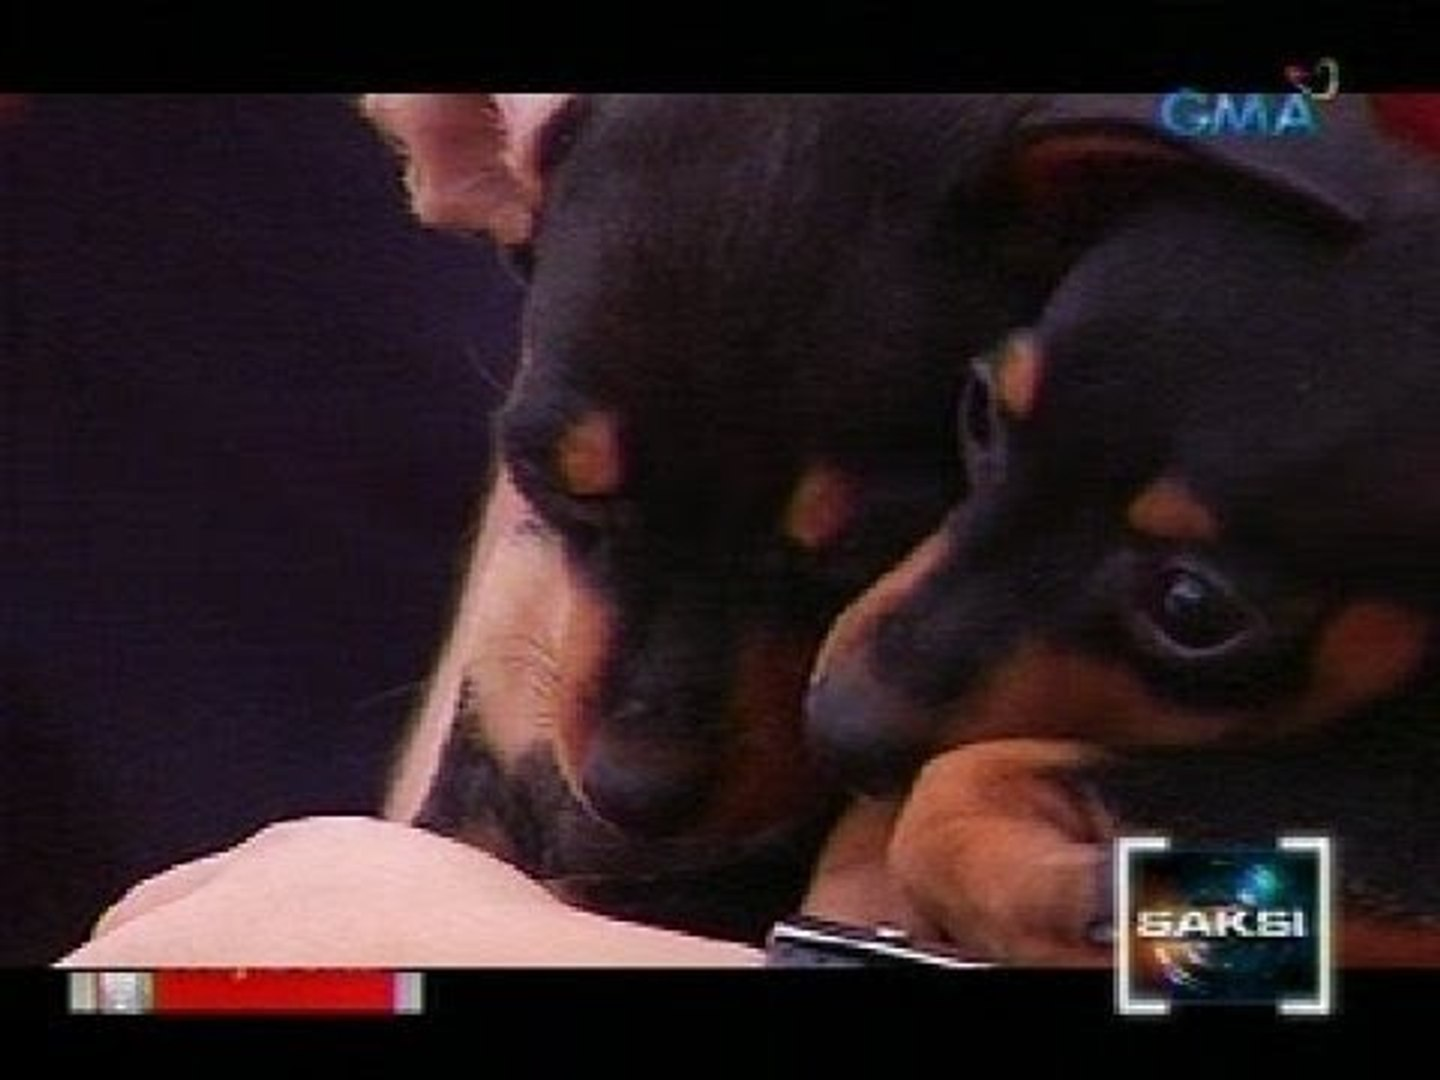 Saksi: Pet dogs at maging owners, pwedeng mag-bonding sa tulong ng online pet dating services